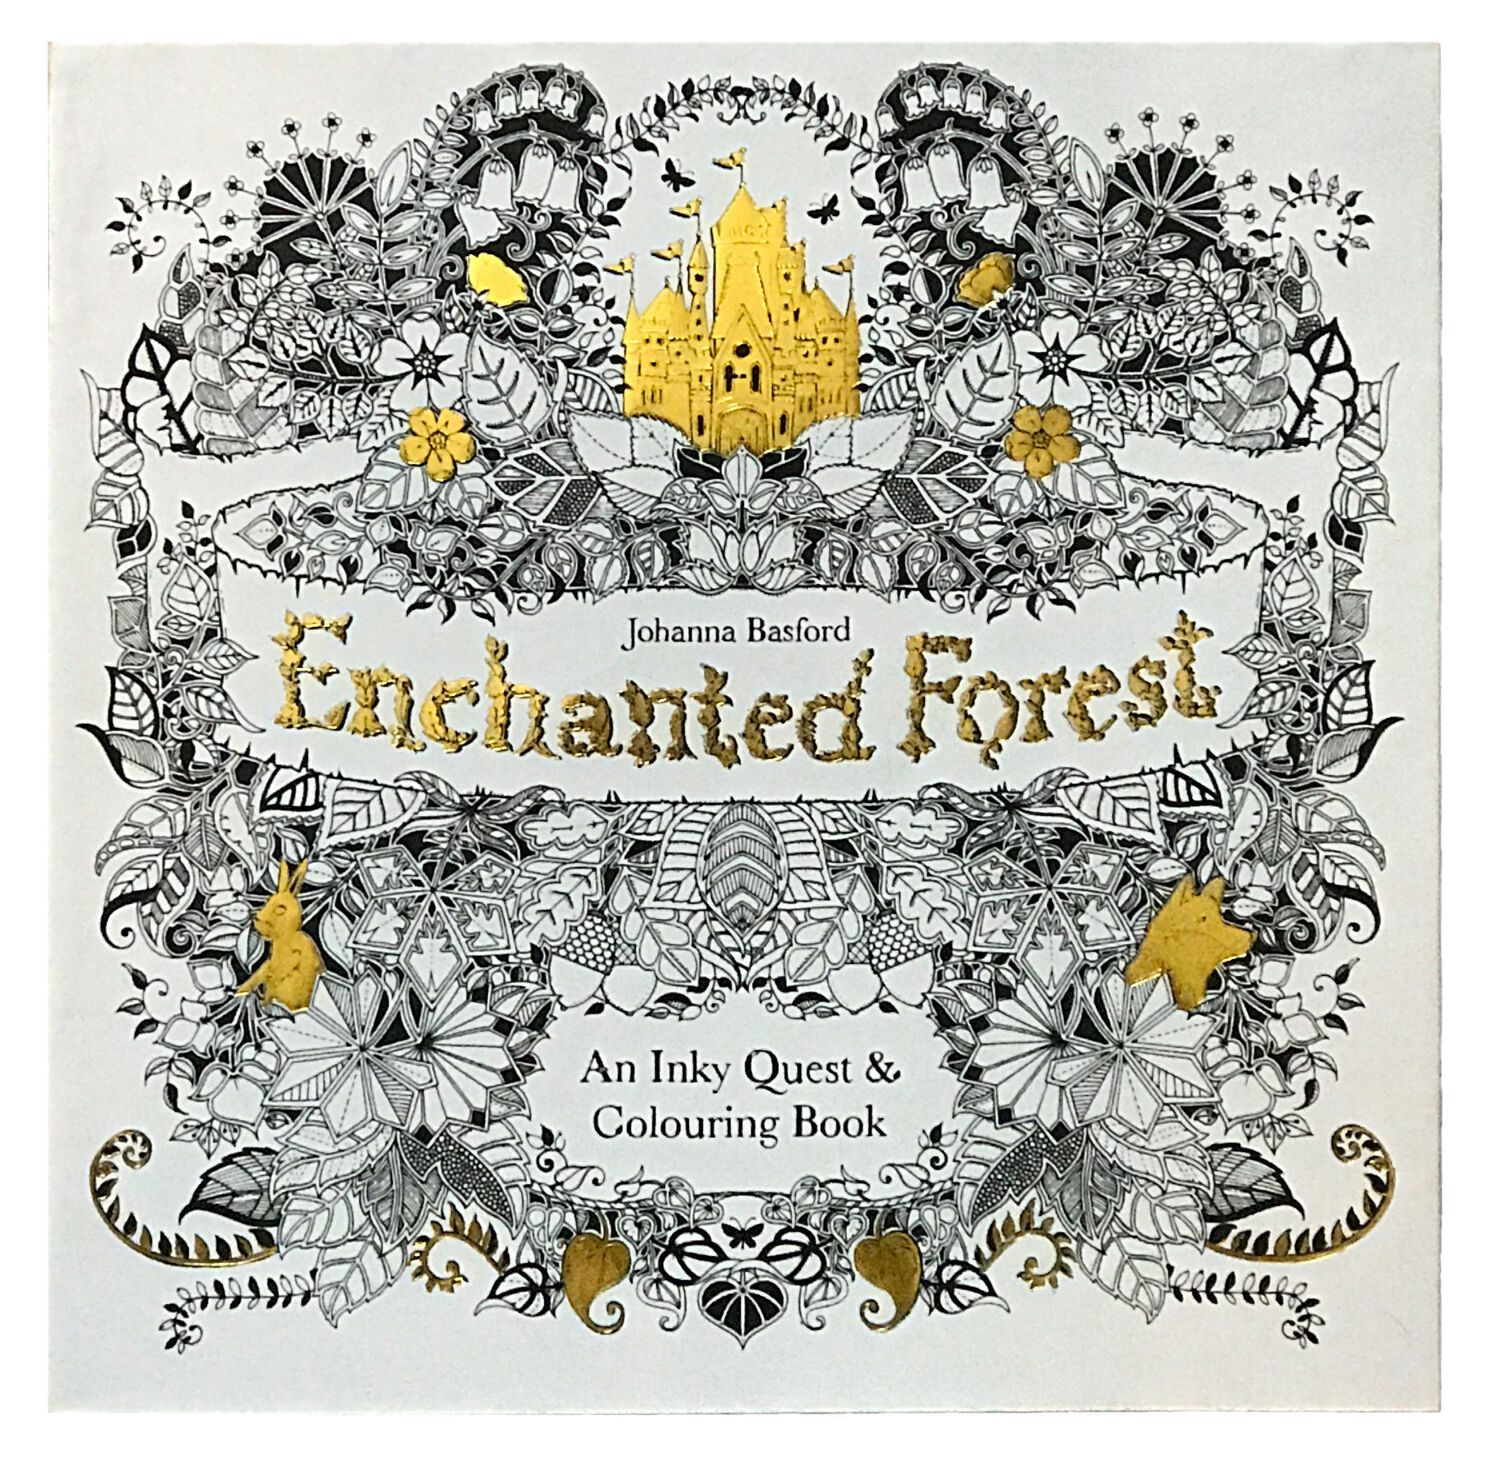 Enchanted Forest An Inky Quest And Coloring Book By Johanna Basford 2015 Paper 1 Of 7FREE Shipping